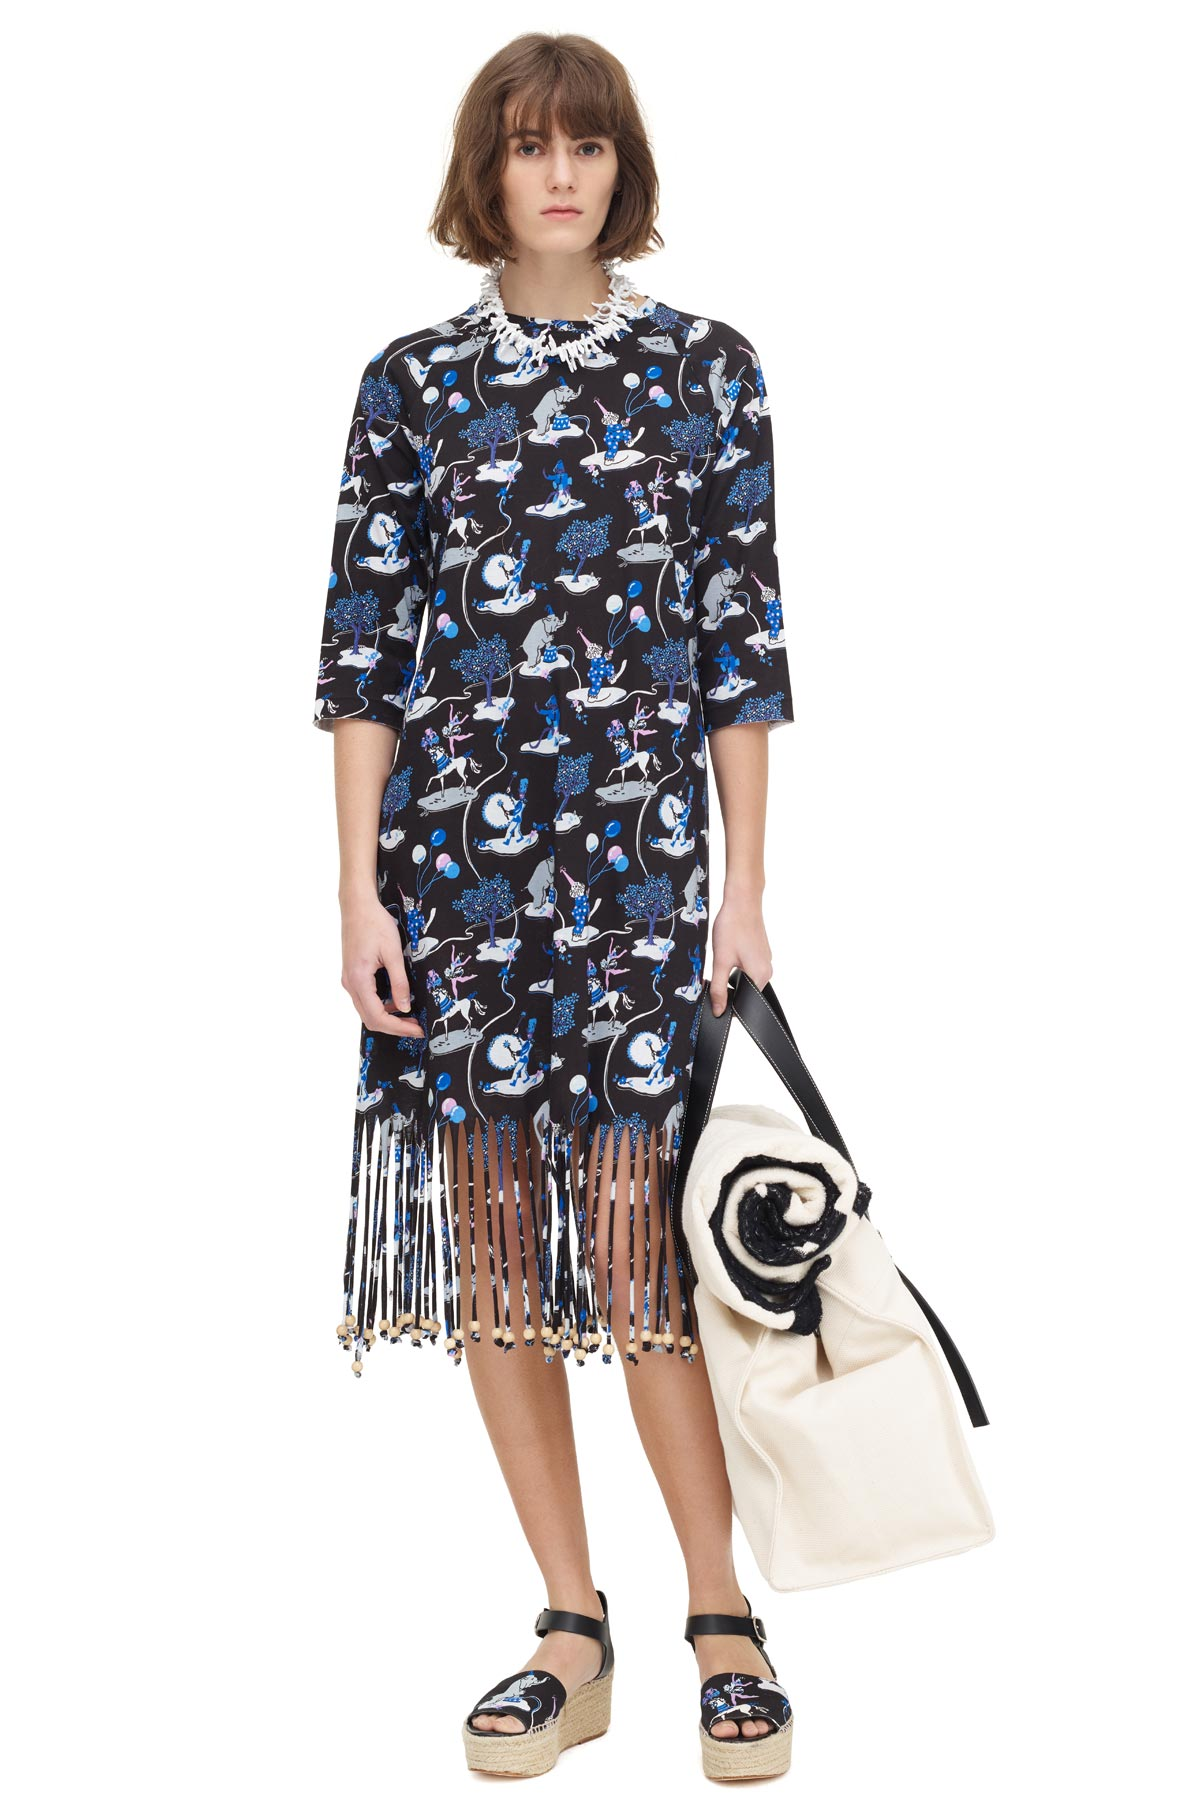 LOEWE Fringe Dress Paula Circus Black/White/Pink/Añil Blue front